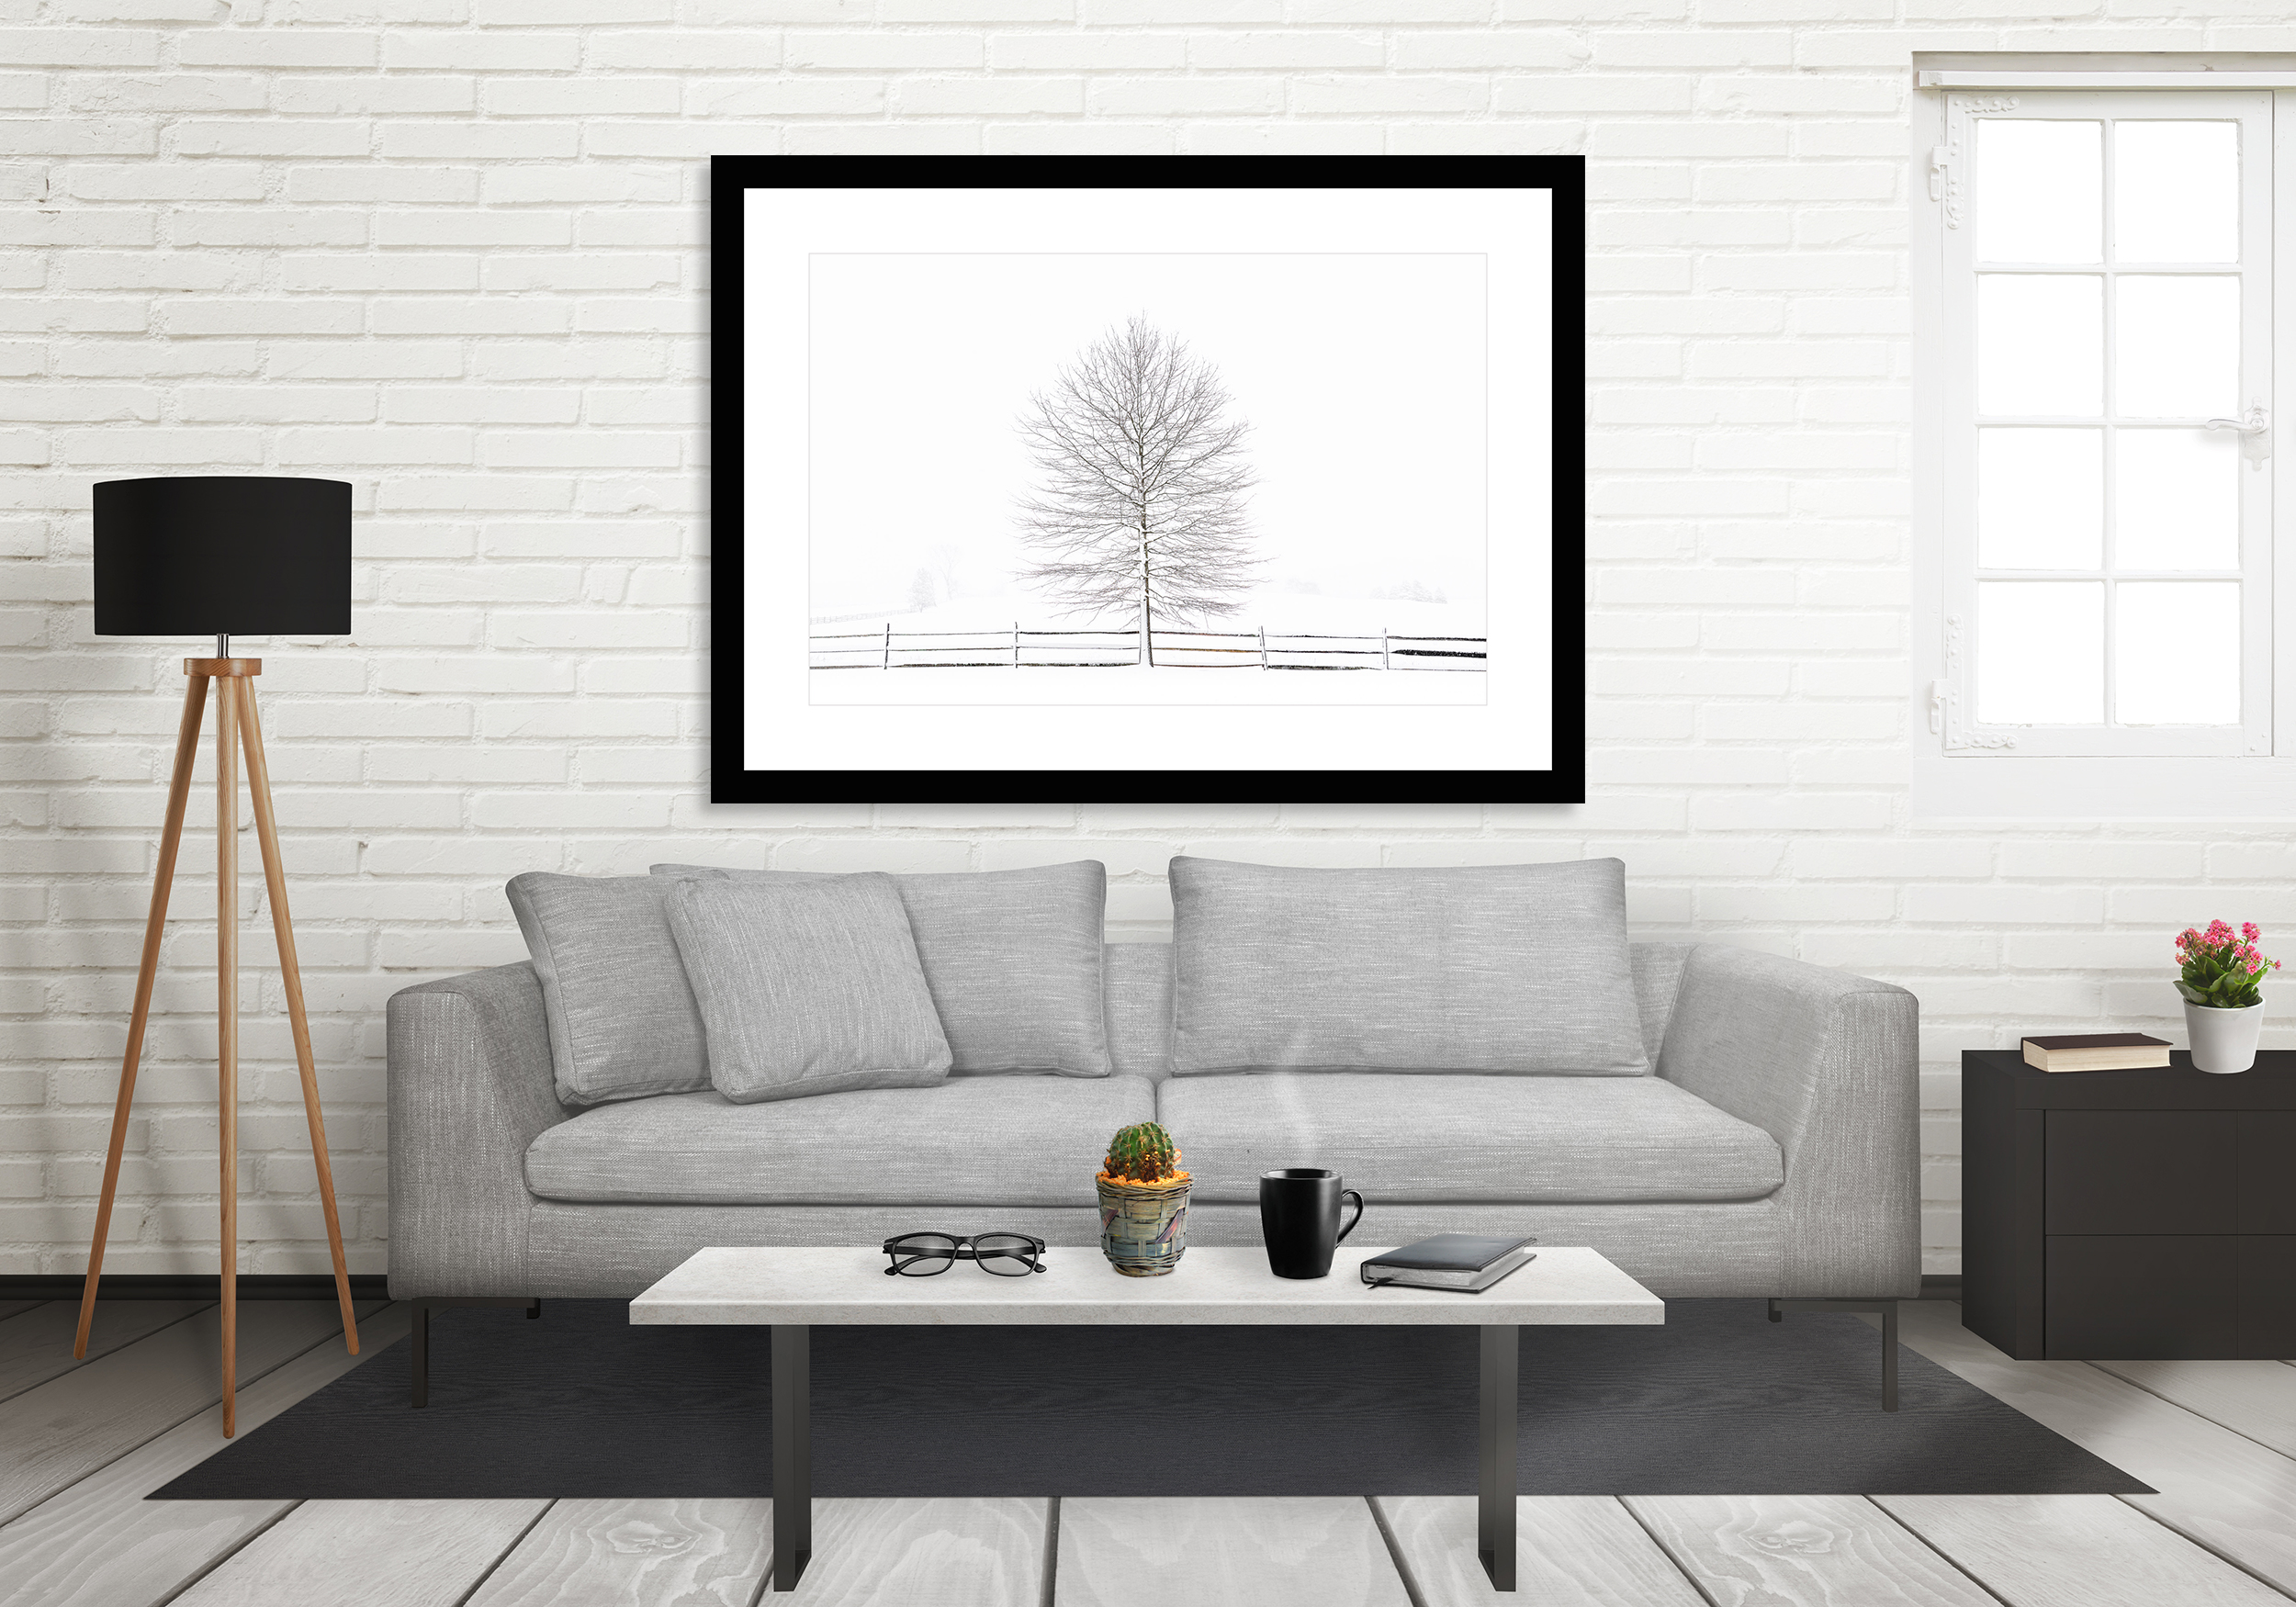 'Tree & Fence' framed and printed on fine art paper. ©johnguillaume